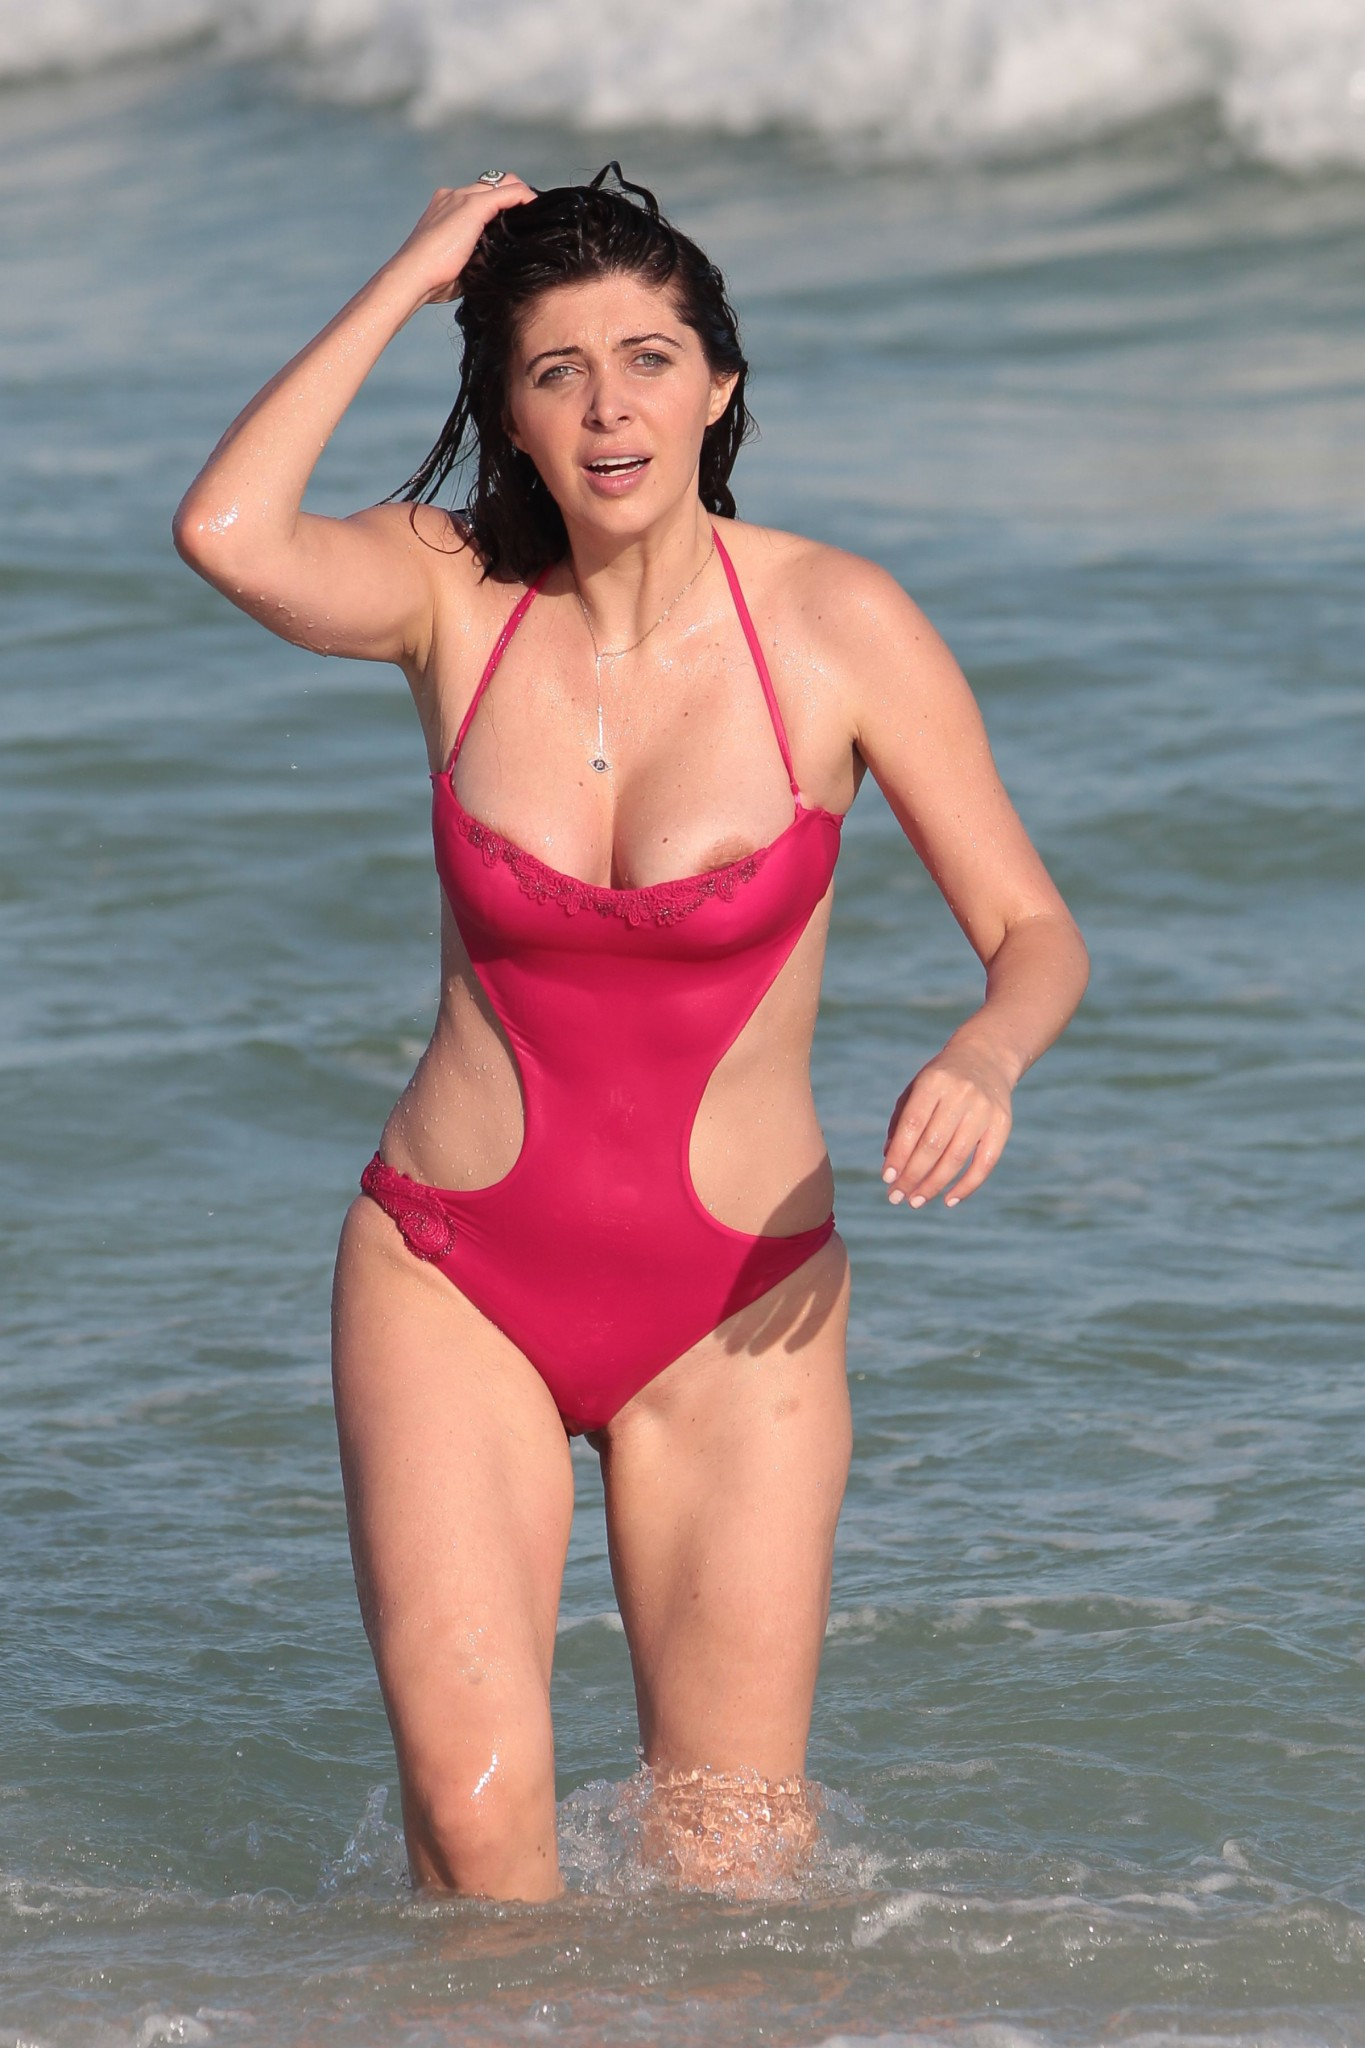 brittny-gastineau-nipple-slip-on-the-beach-in-miami-14